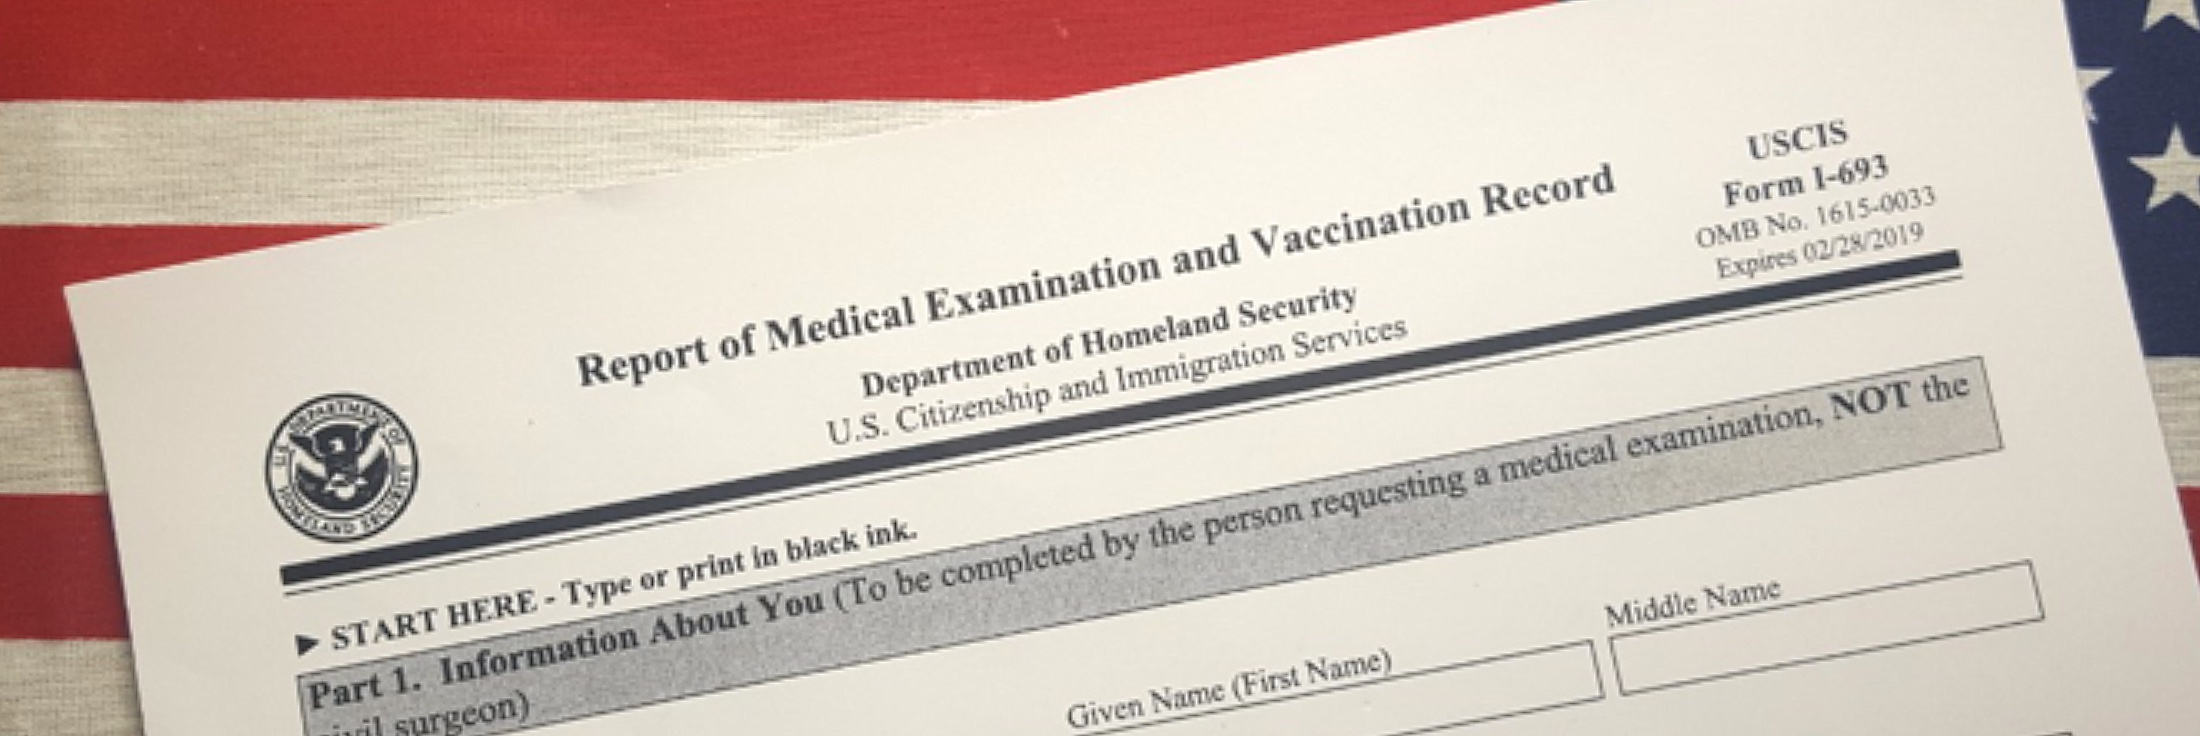 Immigration Medical Exam